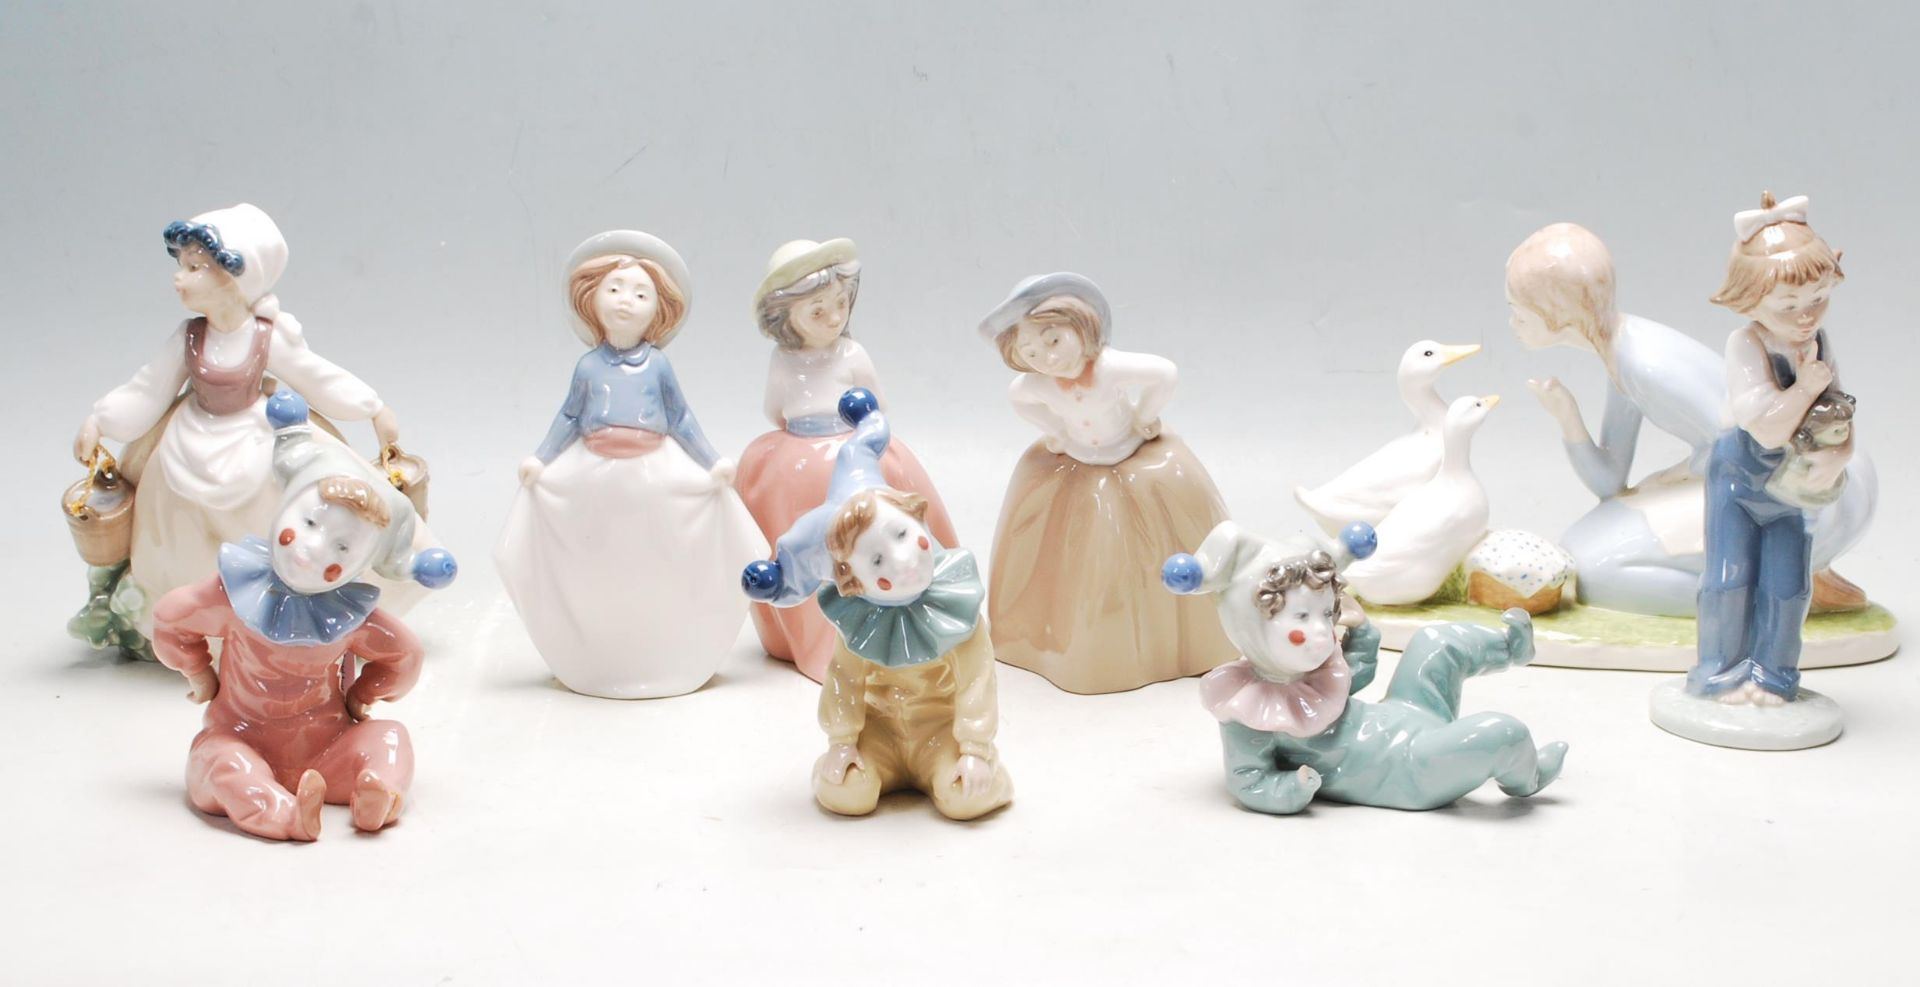 COLELCTION OF LATE 20TH CENTURY CERAMIC PORCELAIN NAO FIGURINES